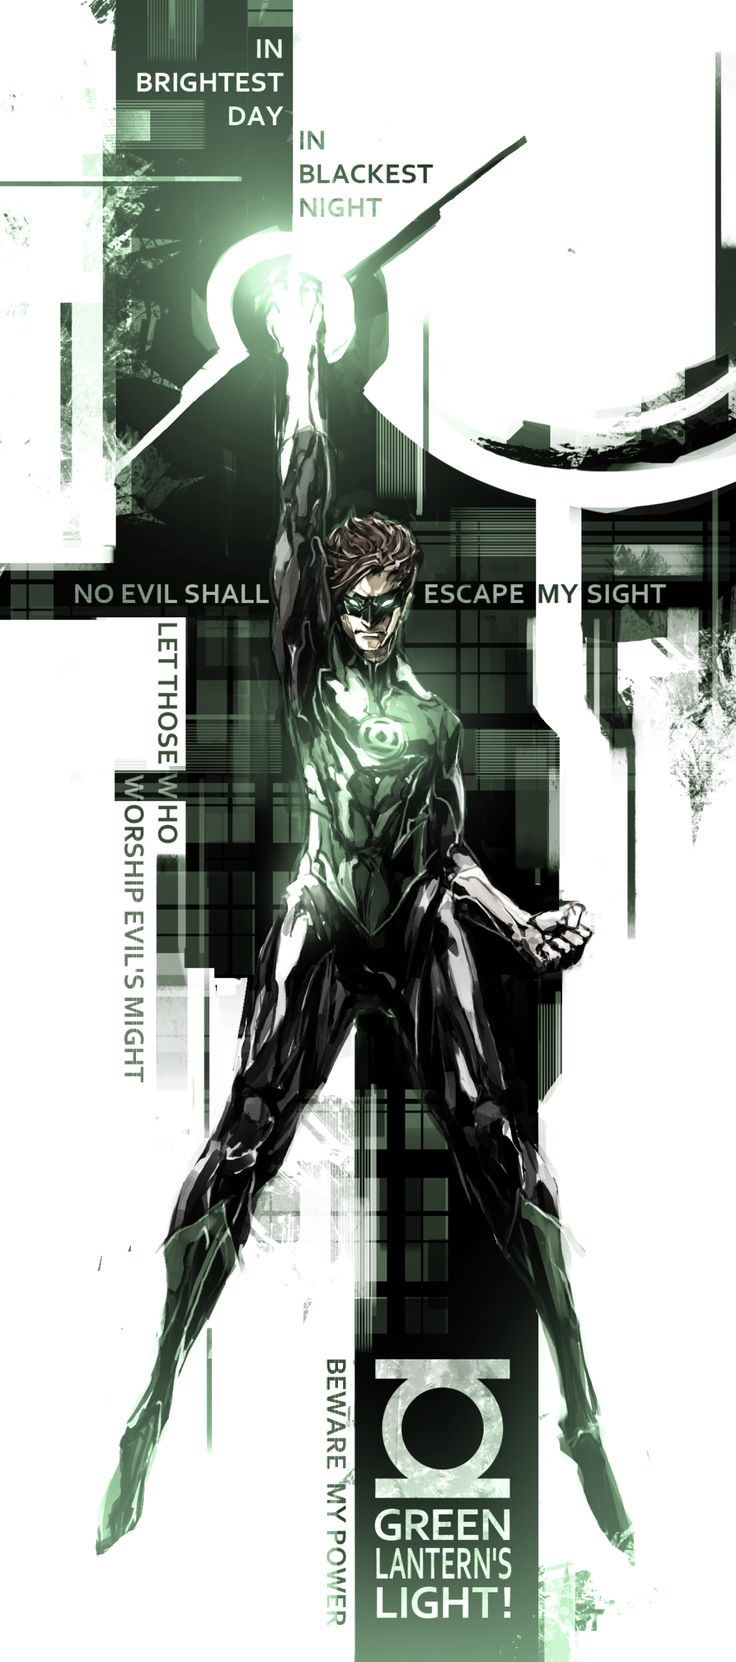 Green Lantern by naratani.deviantart.com on @deviantART